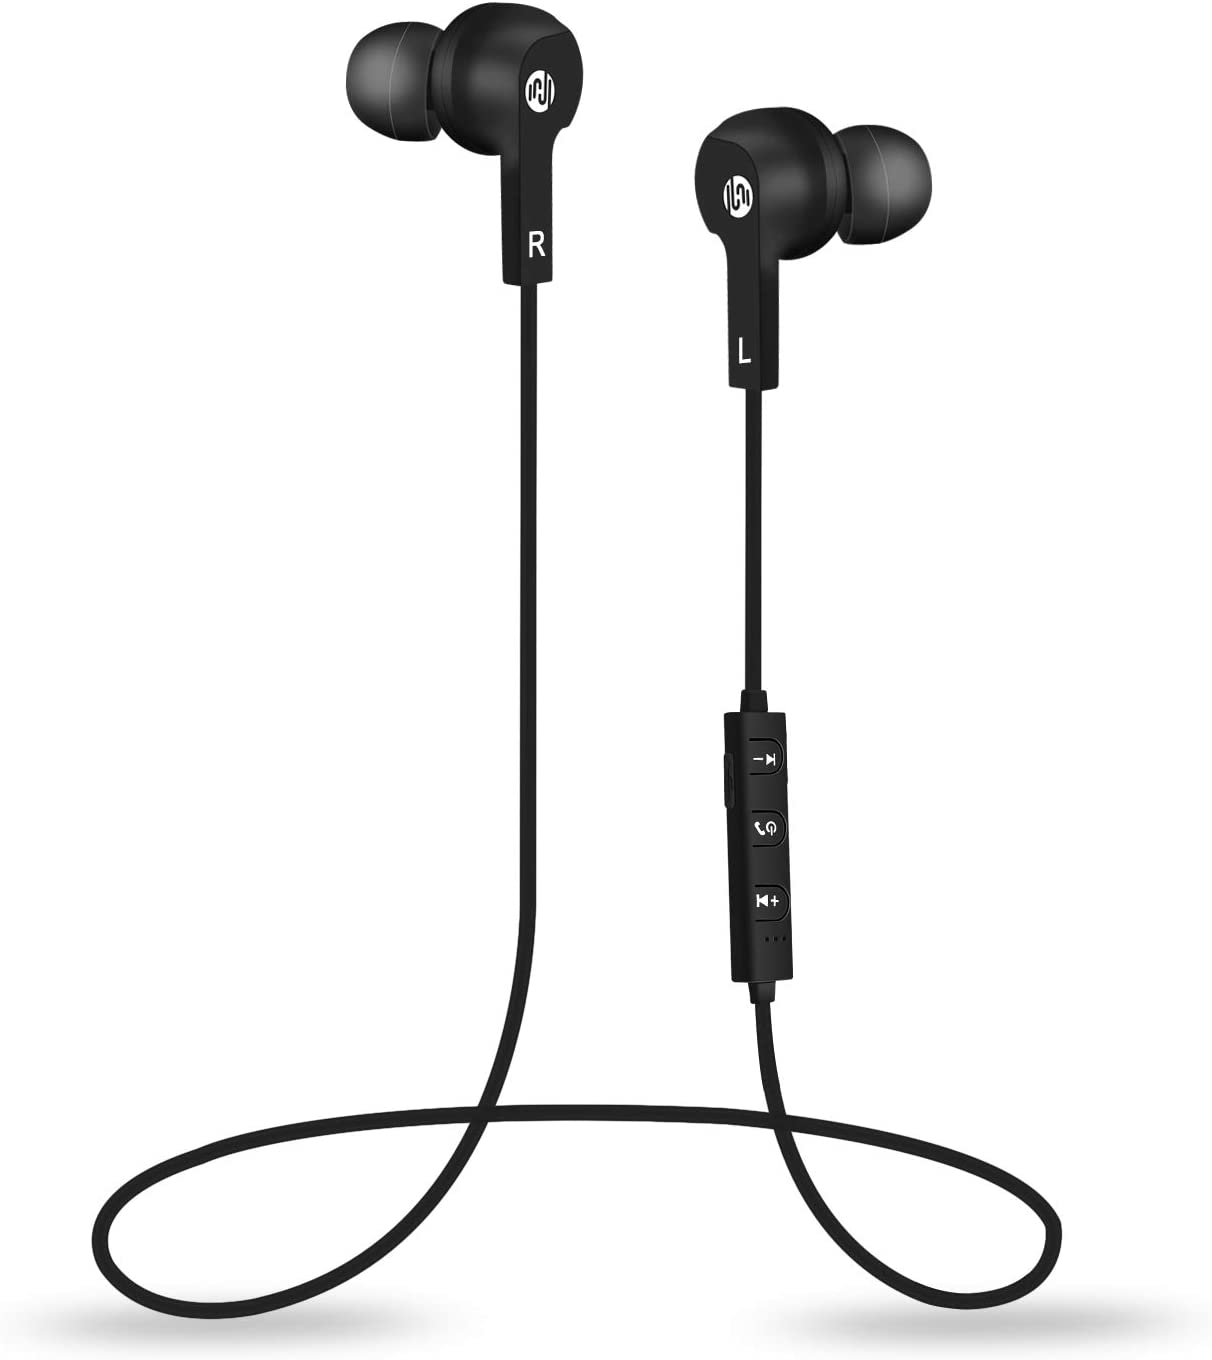 HUIYUJIA Wireless Headphones Bluetooth 5.0 in-Ear Sports Running Earphones Sweatproof Earbuds with Mic for Runner Working Out, Comfortable & Fast Pairing Lightweight 12g iPhone & Android Phones(Black)